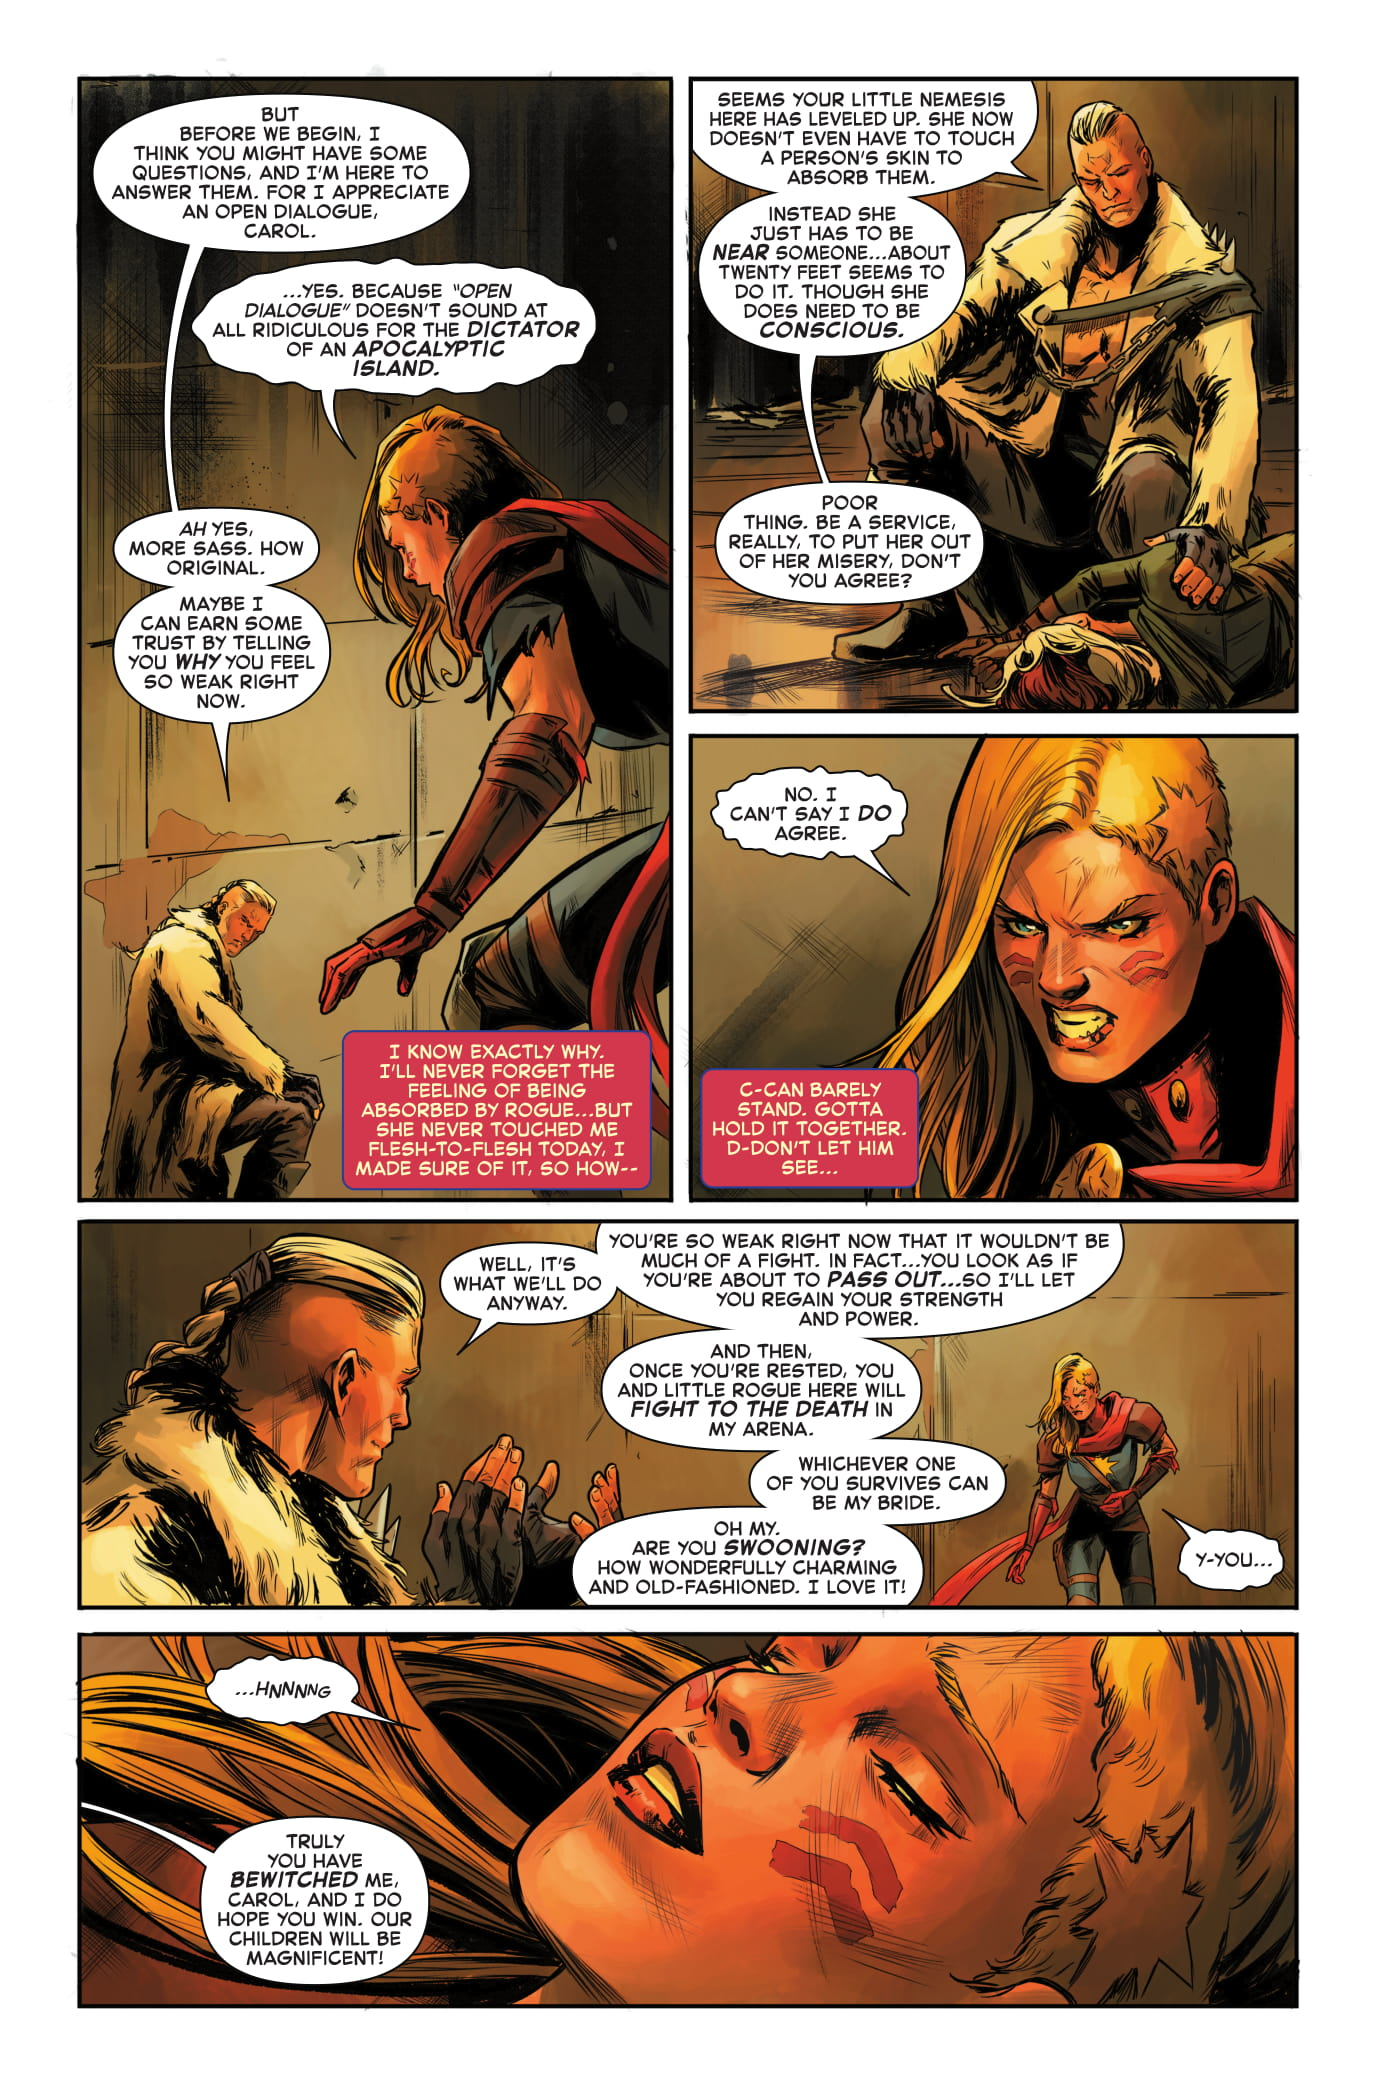 Captain Marvel #4 page 5